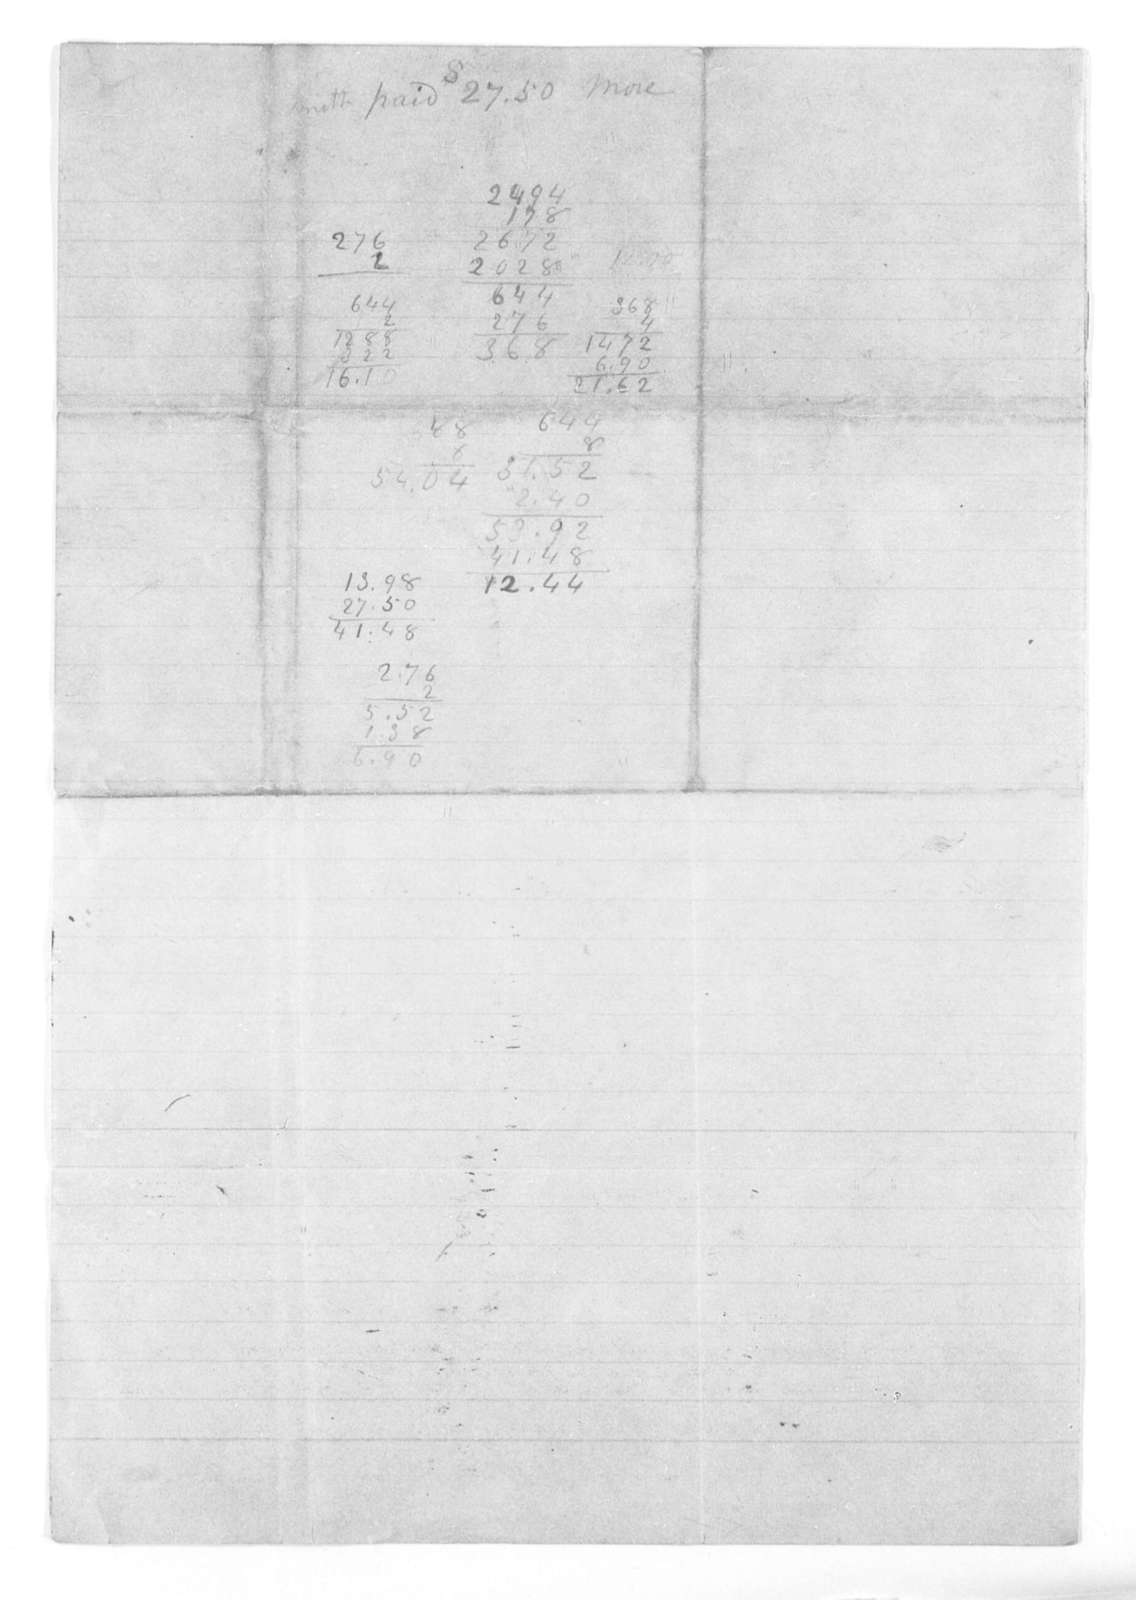 Unidentified correspondence concerning telegraph revenues and improvements